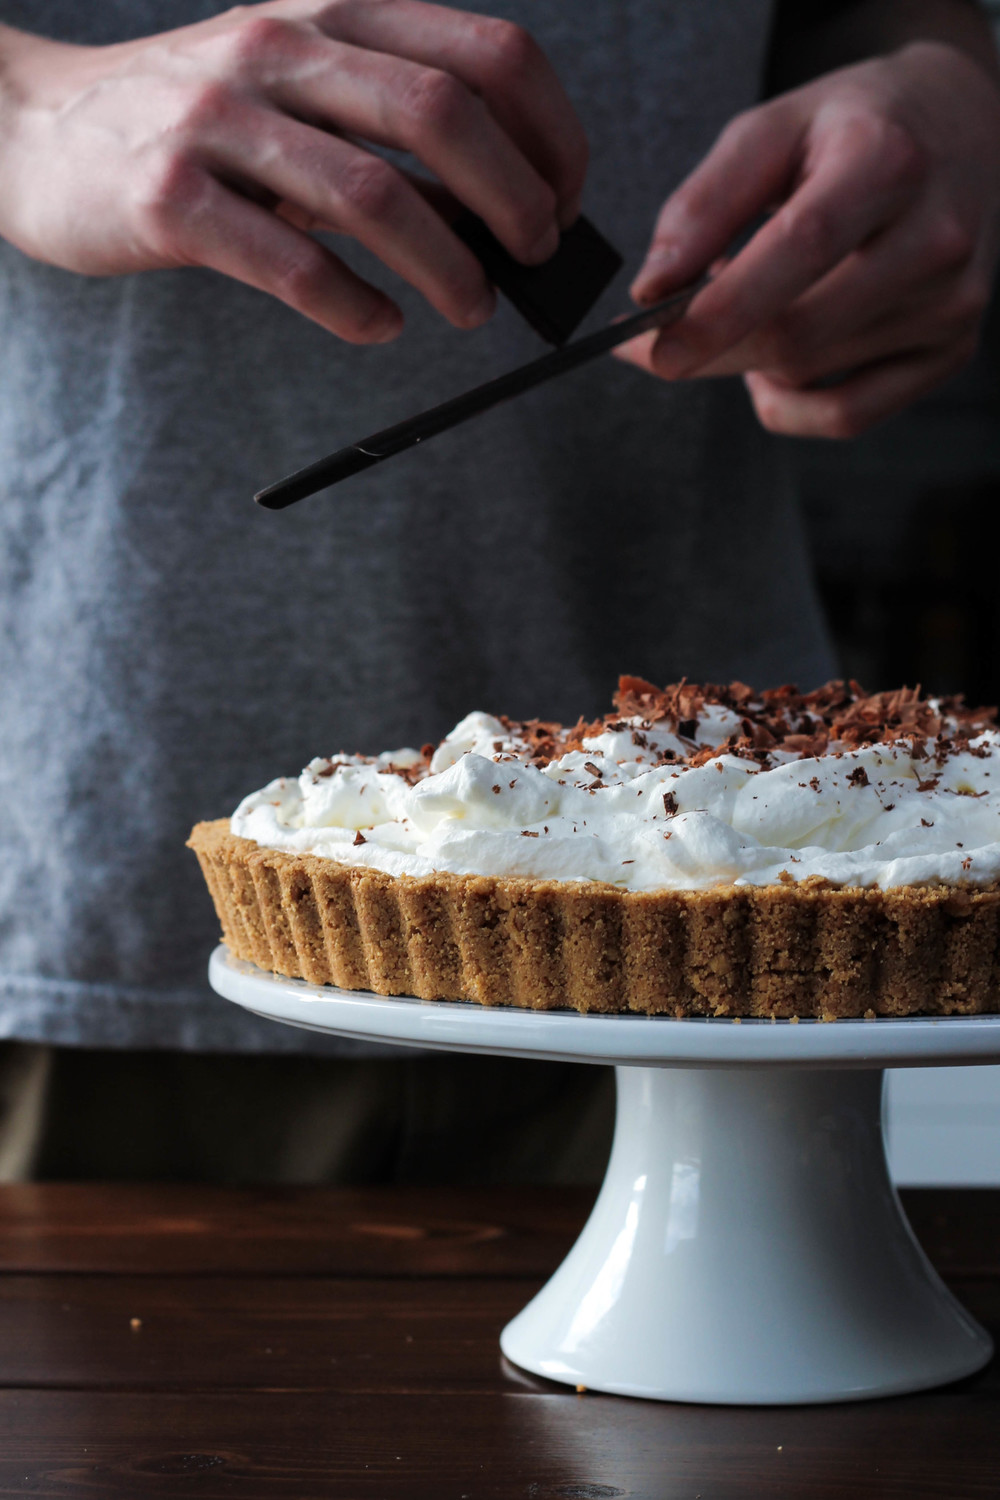 Homemade Dulce de Leche || Banoffee Birthday Pie || A classic British inspired dessert! Digestive biscuit crust, dulce de leche (or caramel), banana, whipped cream + shaved chocolate. Toffee + Bananas are a dream come true! Easy to make and only six ingredients. || creamandhoney.ca